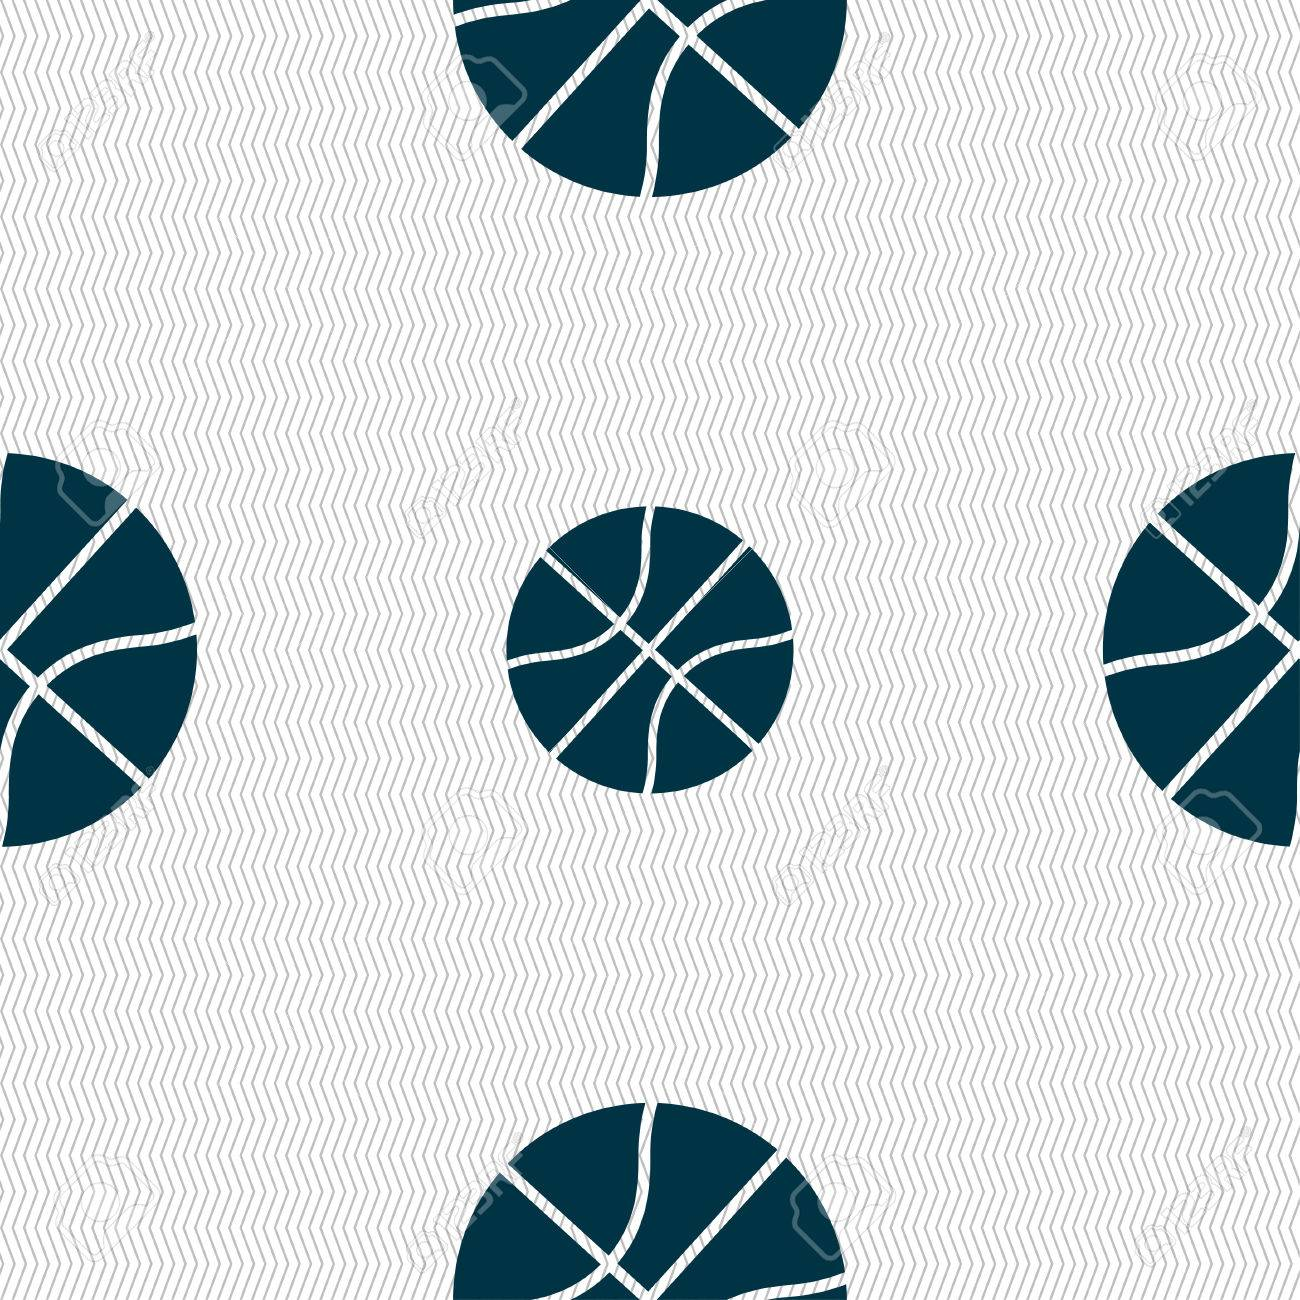 Basketball icon sign. Seamless pattern with geometric texture. Vector illustration - 65001688